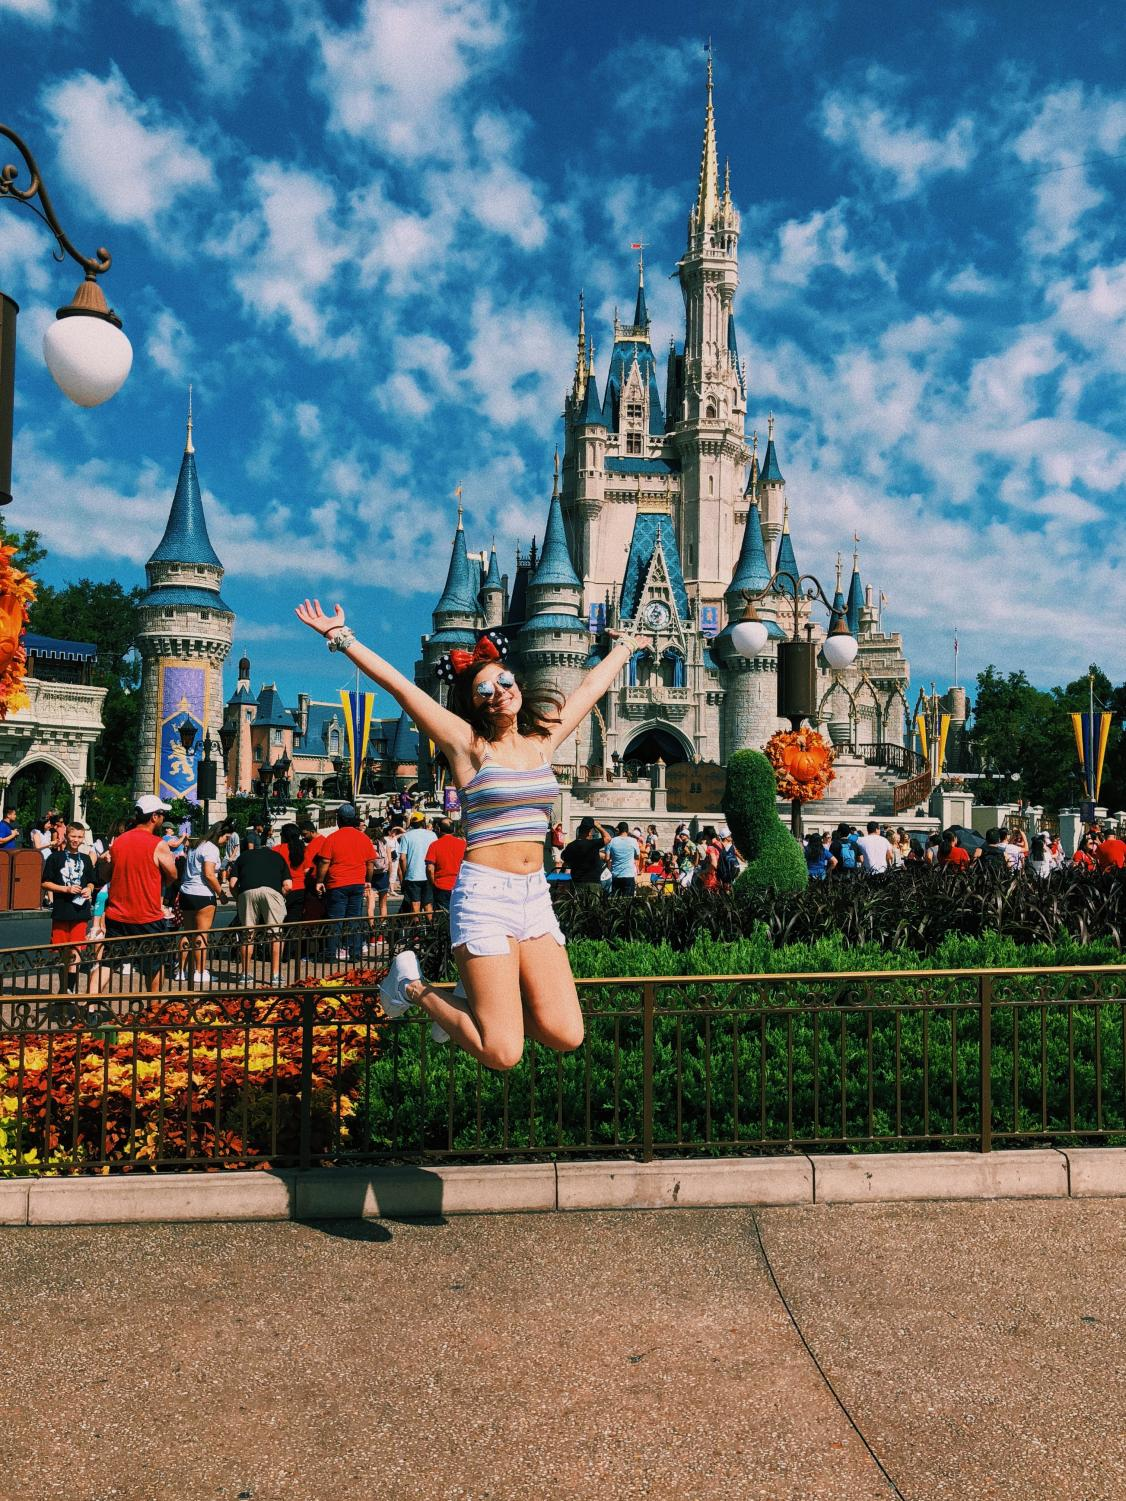 Jumping for joy. THIS is what it feels like when you have your first trip to Disney.